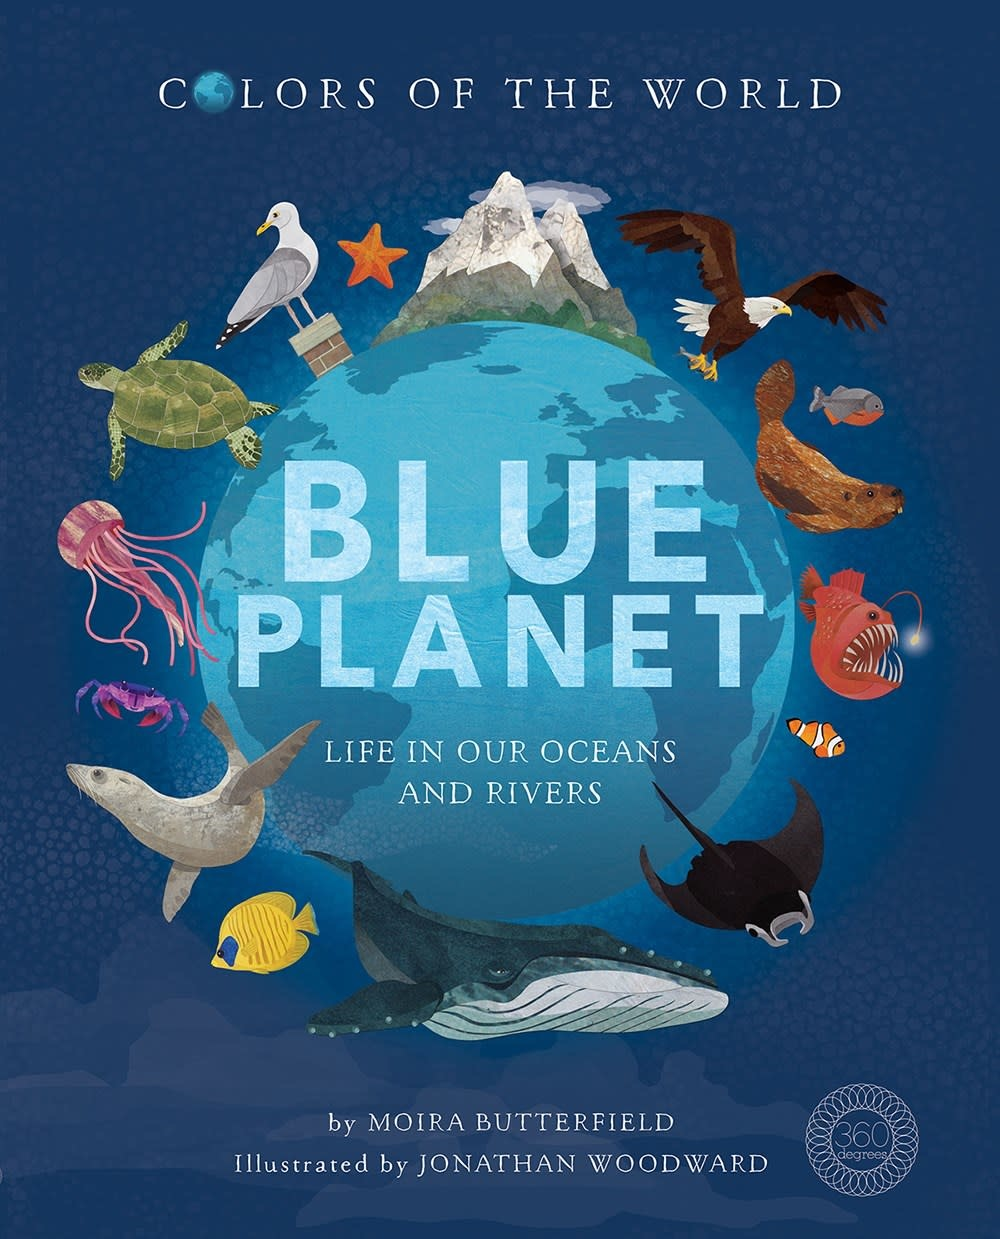 360 Degrees Blue Planet: Life in Our Oceans and Rivers